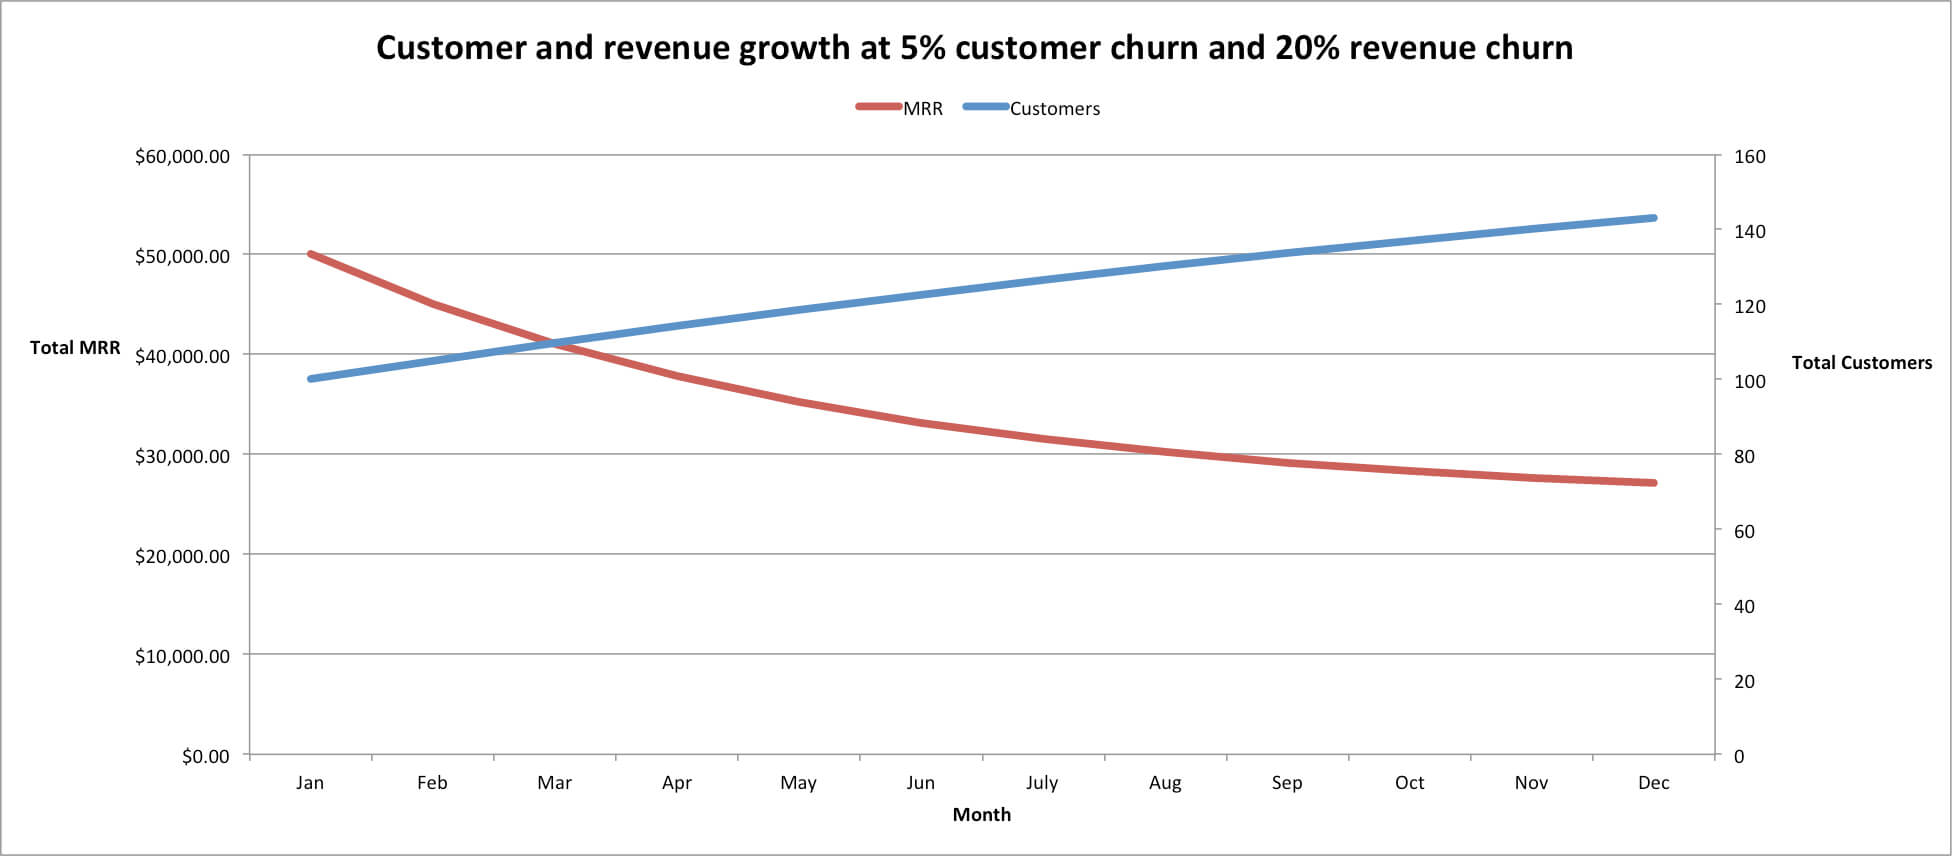 customer-churn-vs-revenue-churn